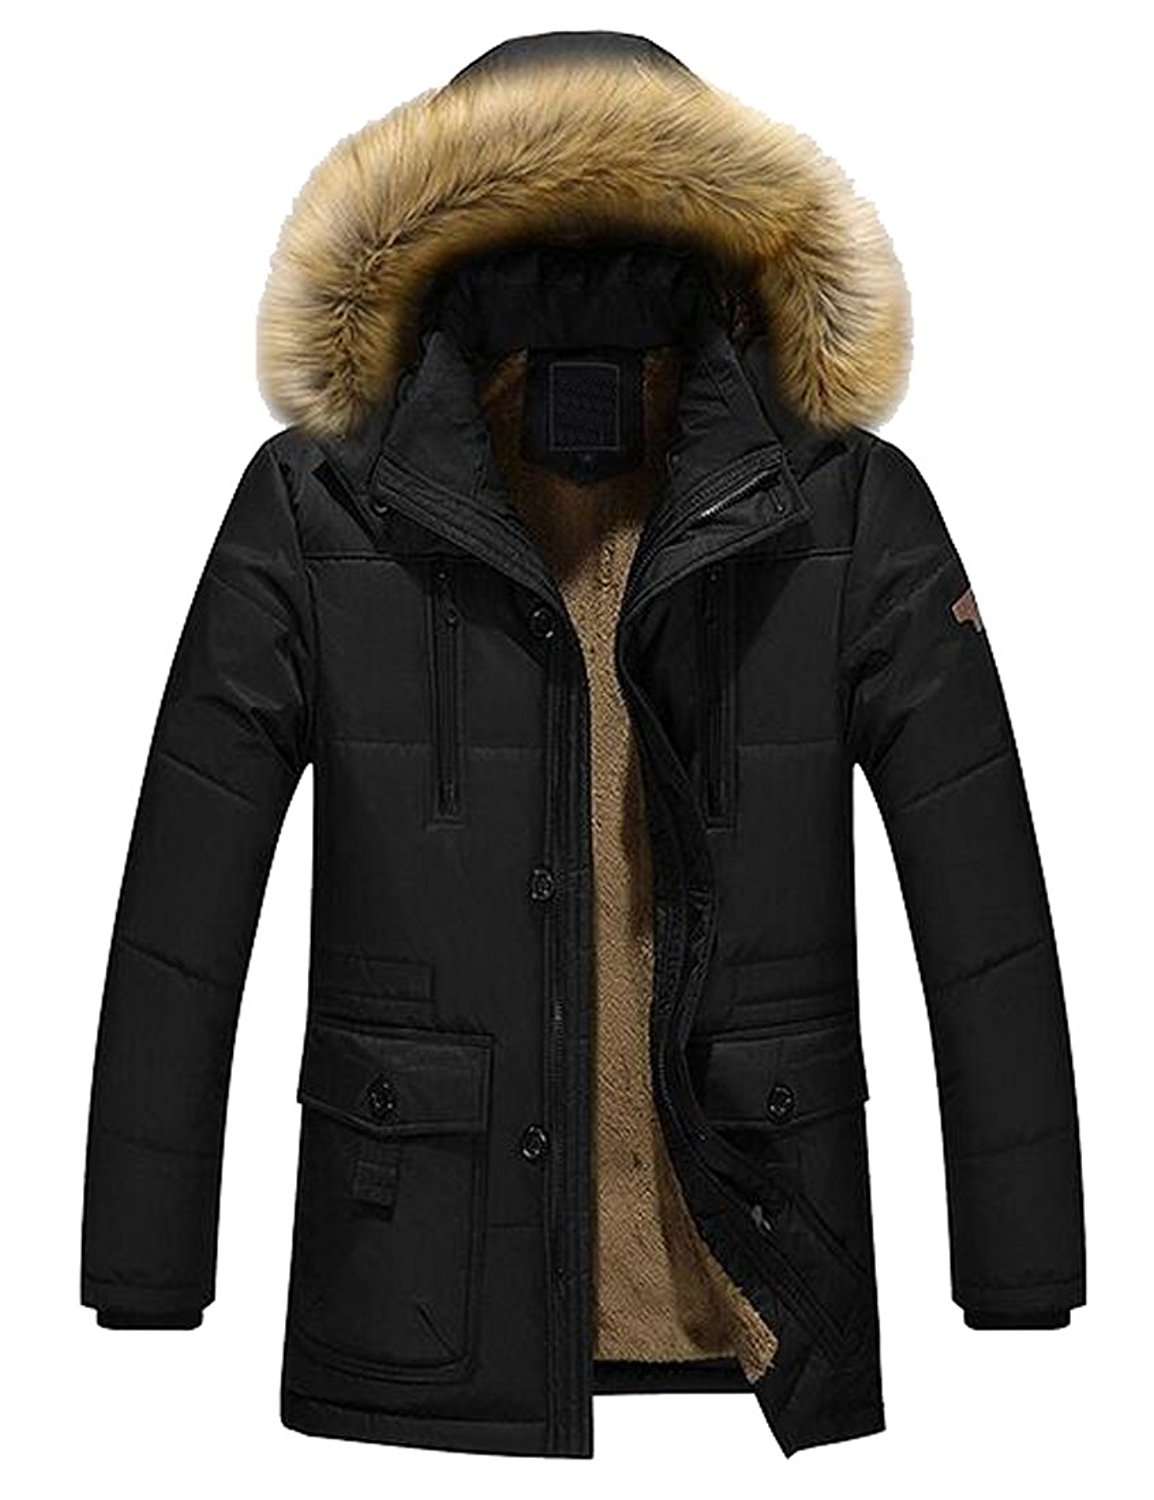 SHOWNO Mens Faux Fur Hooded Thicken Fleece Fall /& Winter Mid Length Quilted Jacket Coat Outerwear